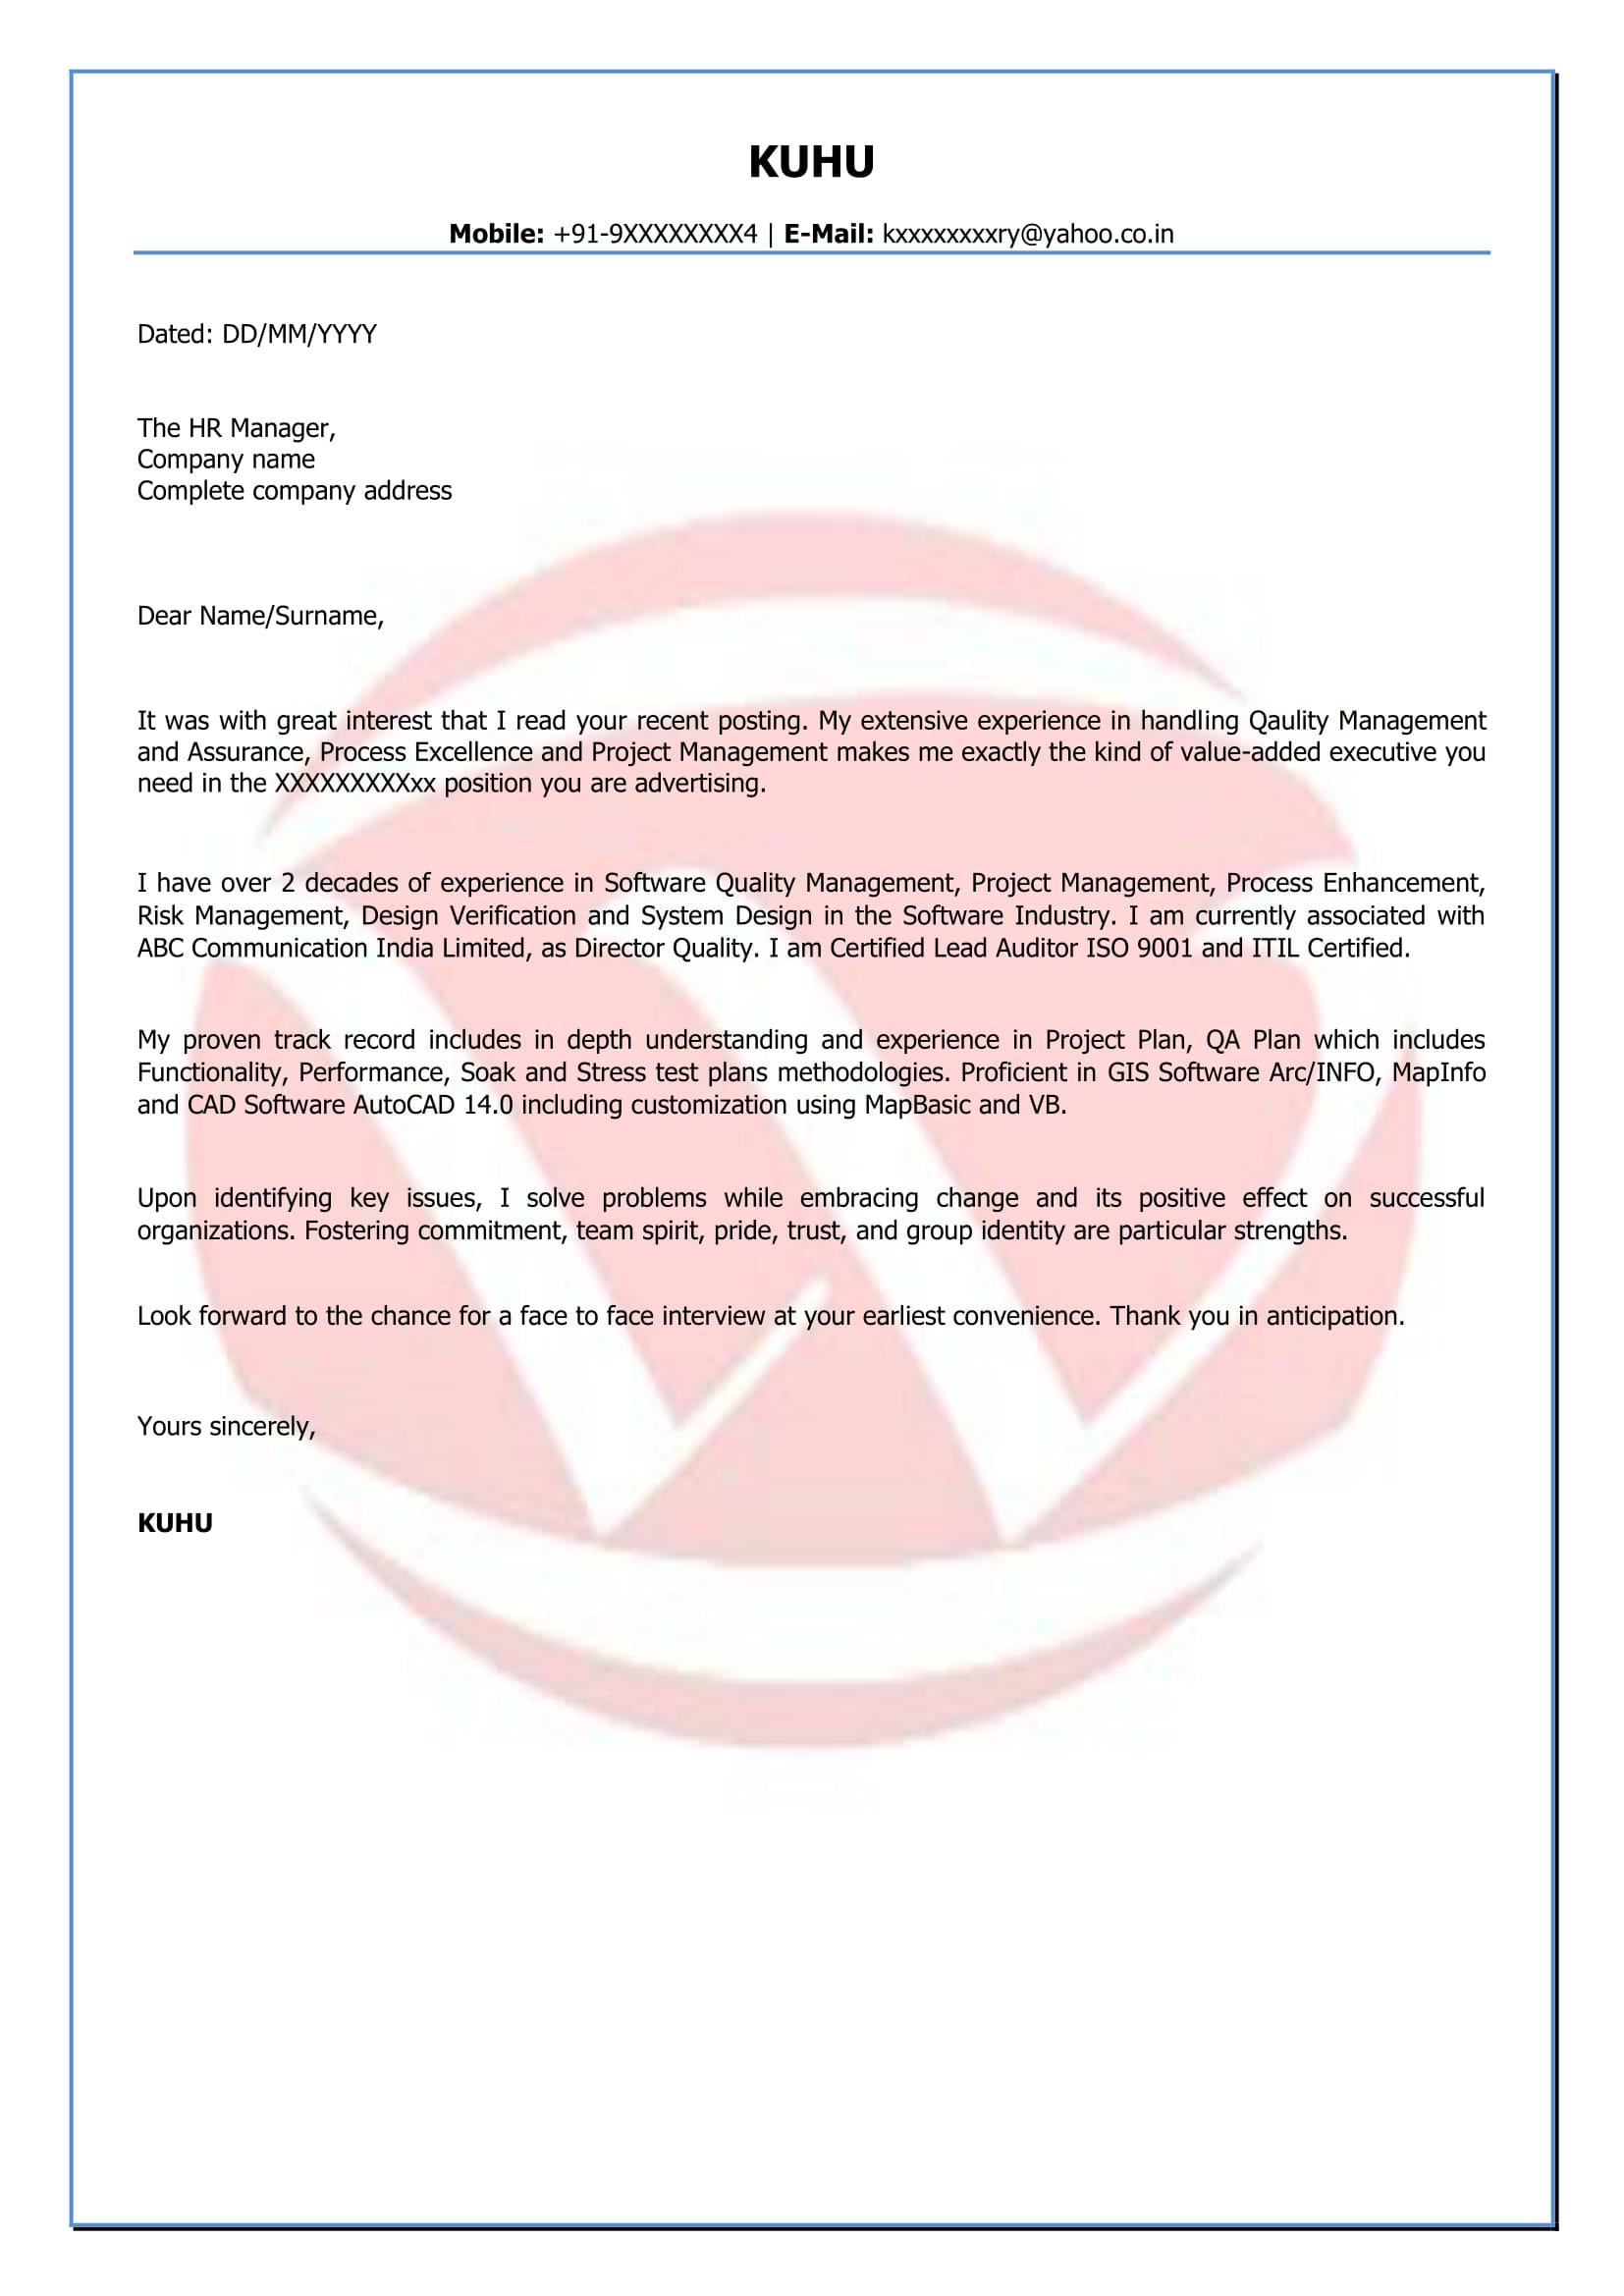 Quality Control Cover Letter | Quality Control Sample Cover Letter Format Download Cover Letter